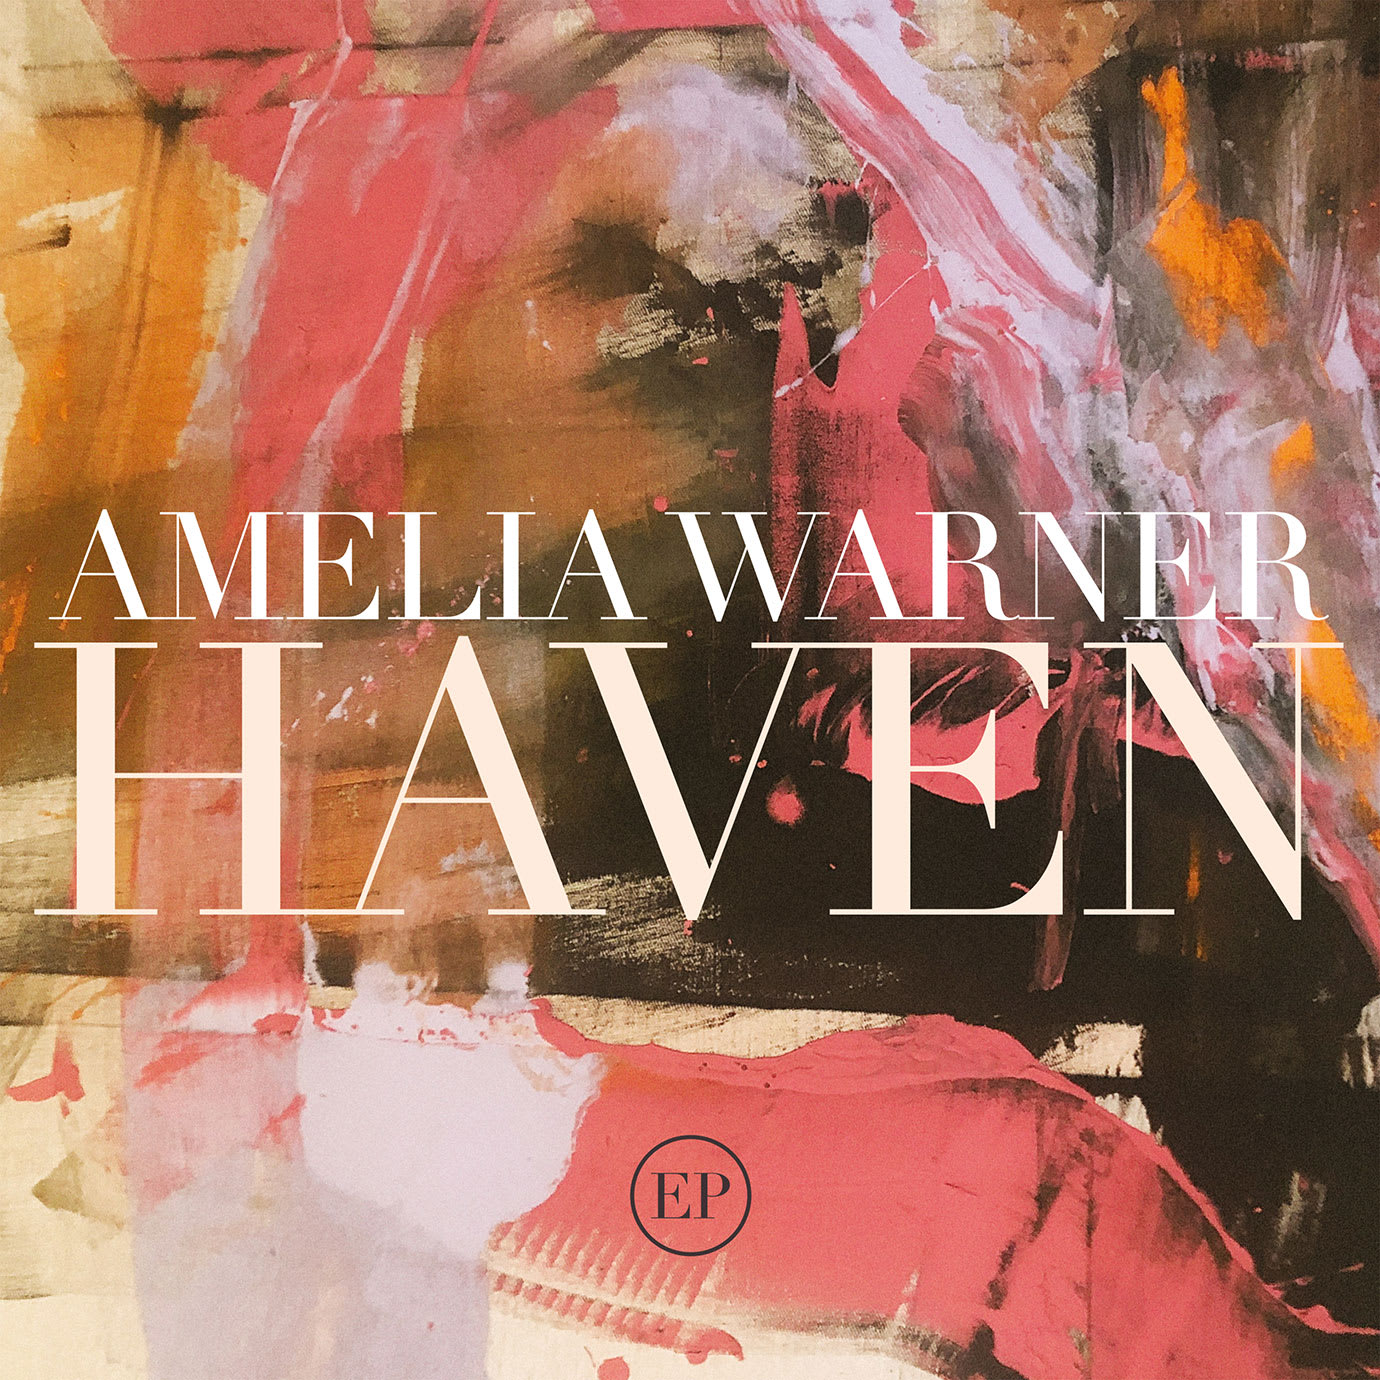 An album cover with an abstract painting on it and Amelia Warner Haven written on it.